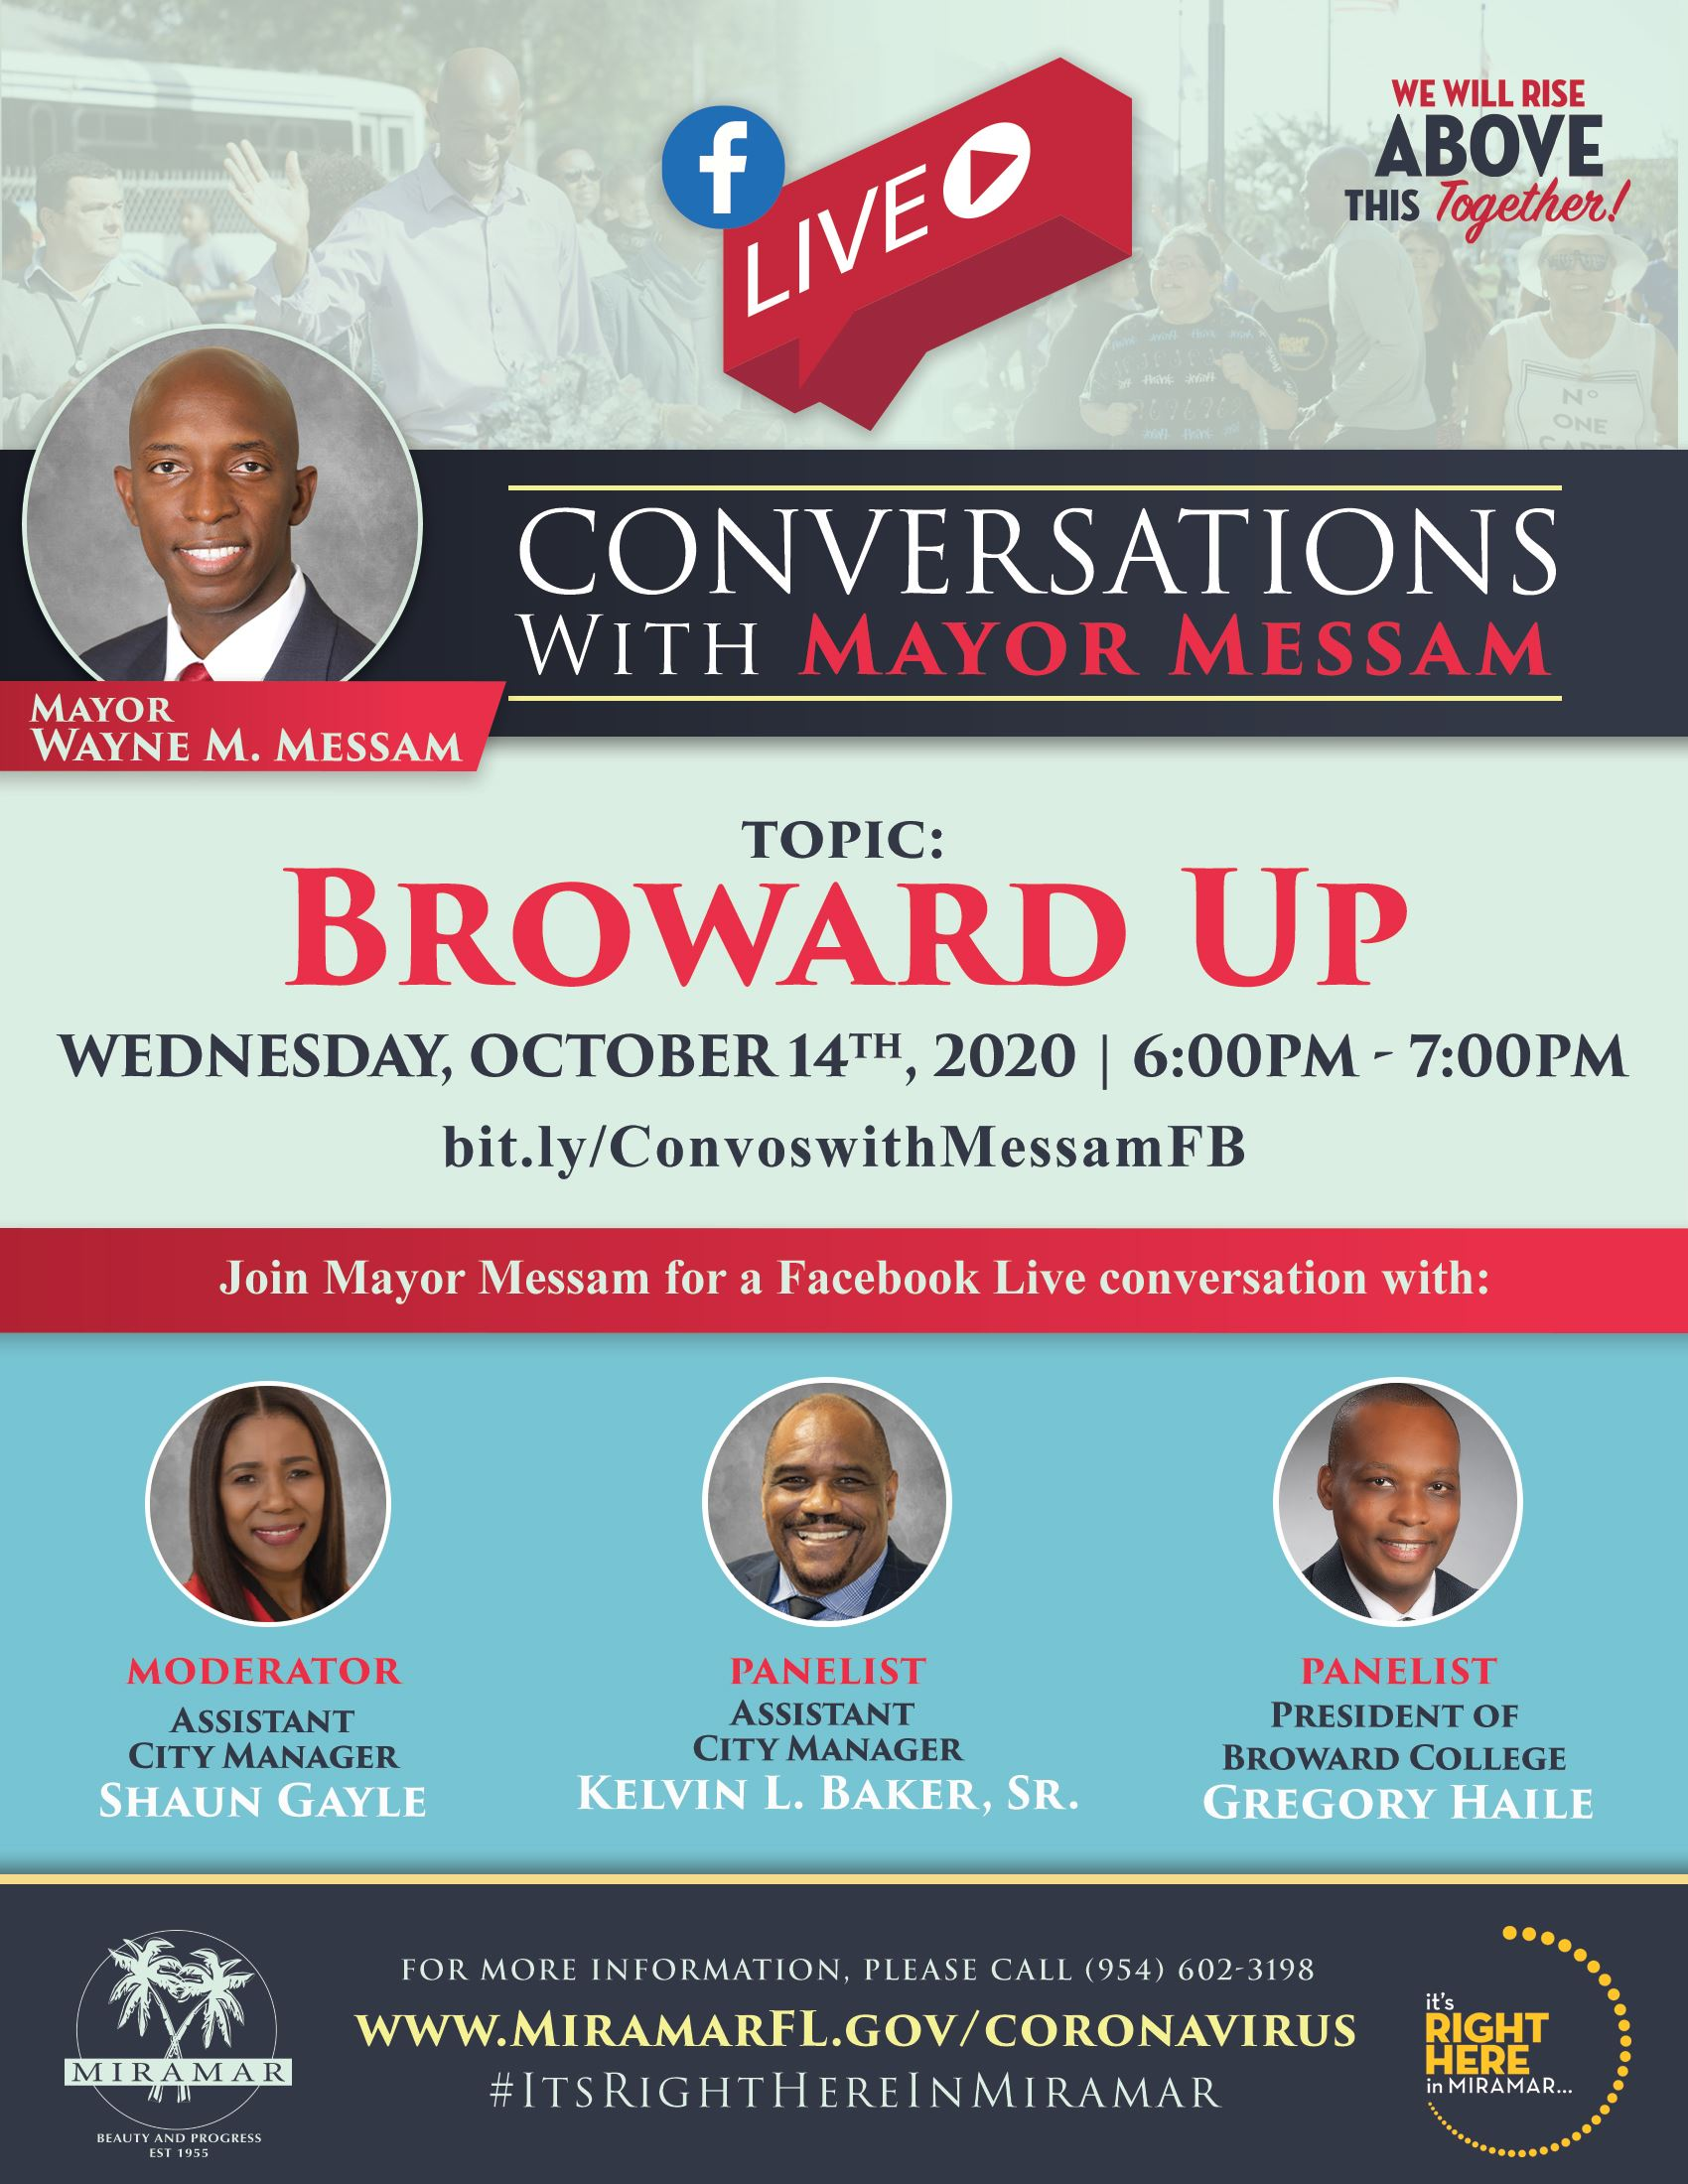 Facebook Live Conversations with Mayor Flyer_Oct14